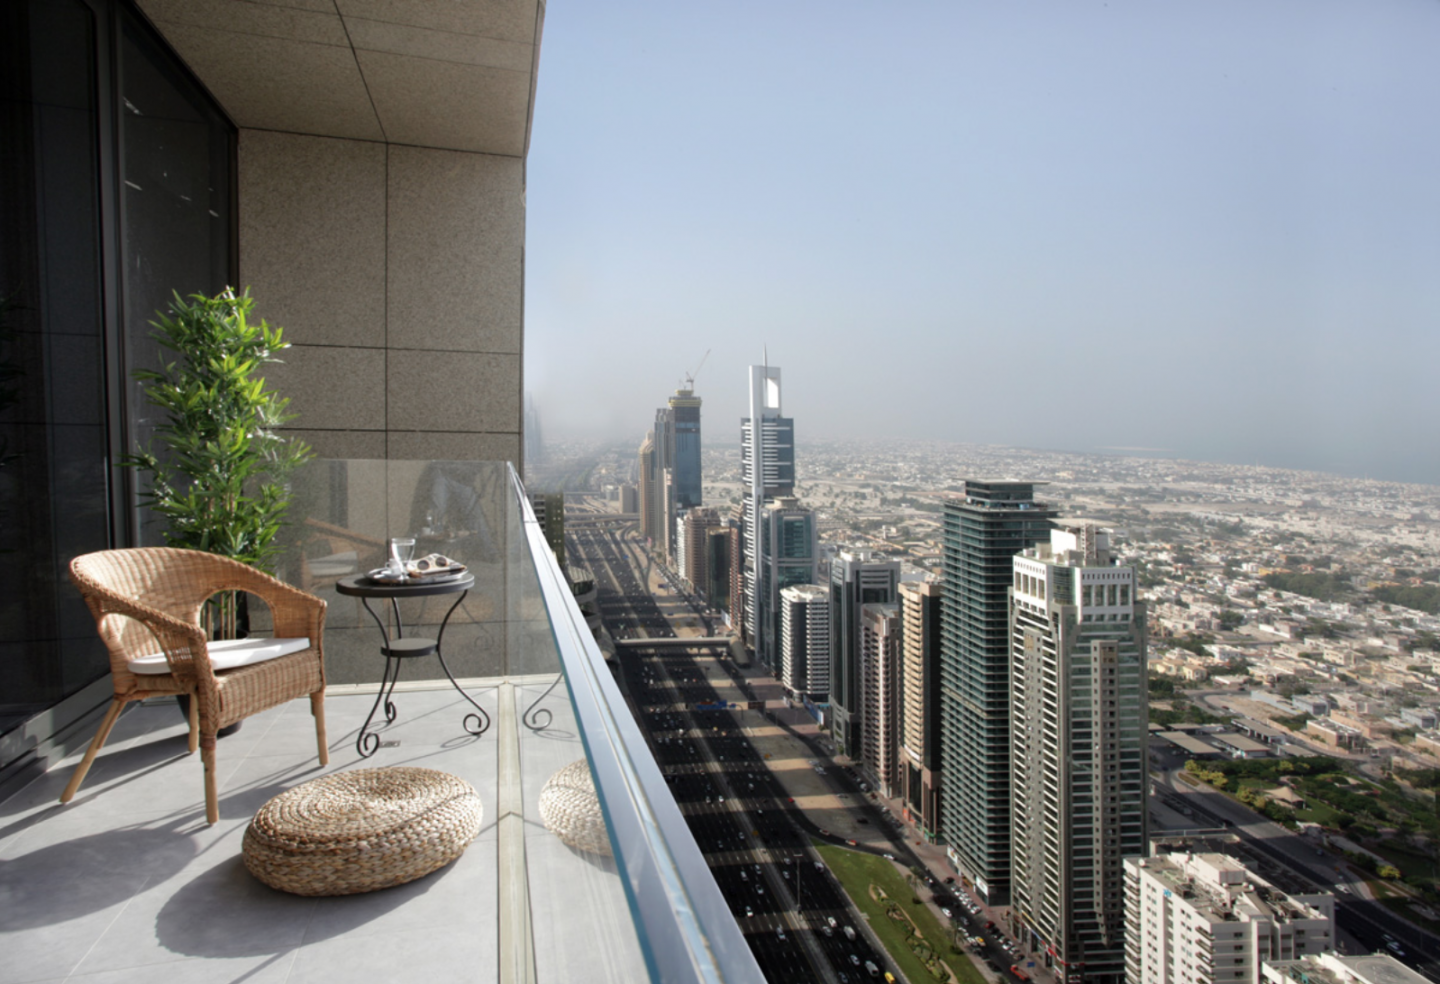 The Maze Tower is located on Sheikh Zayed Road in the heart of Dubai's Financial District.